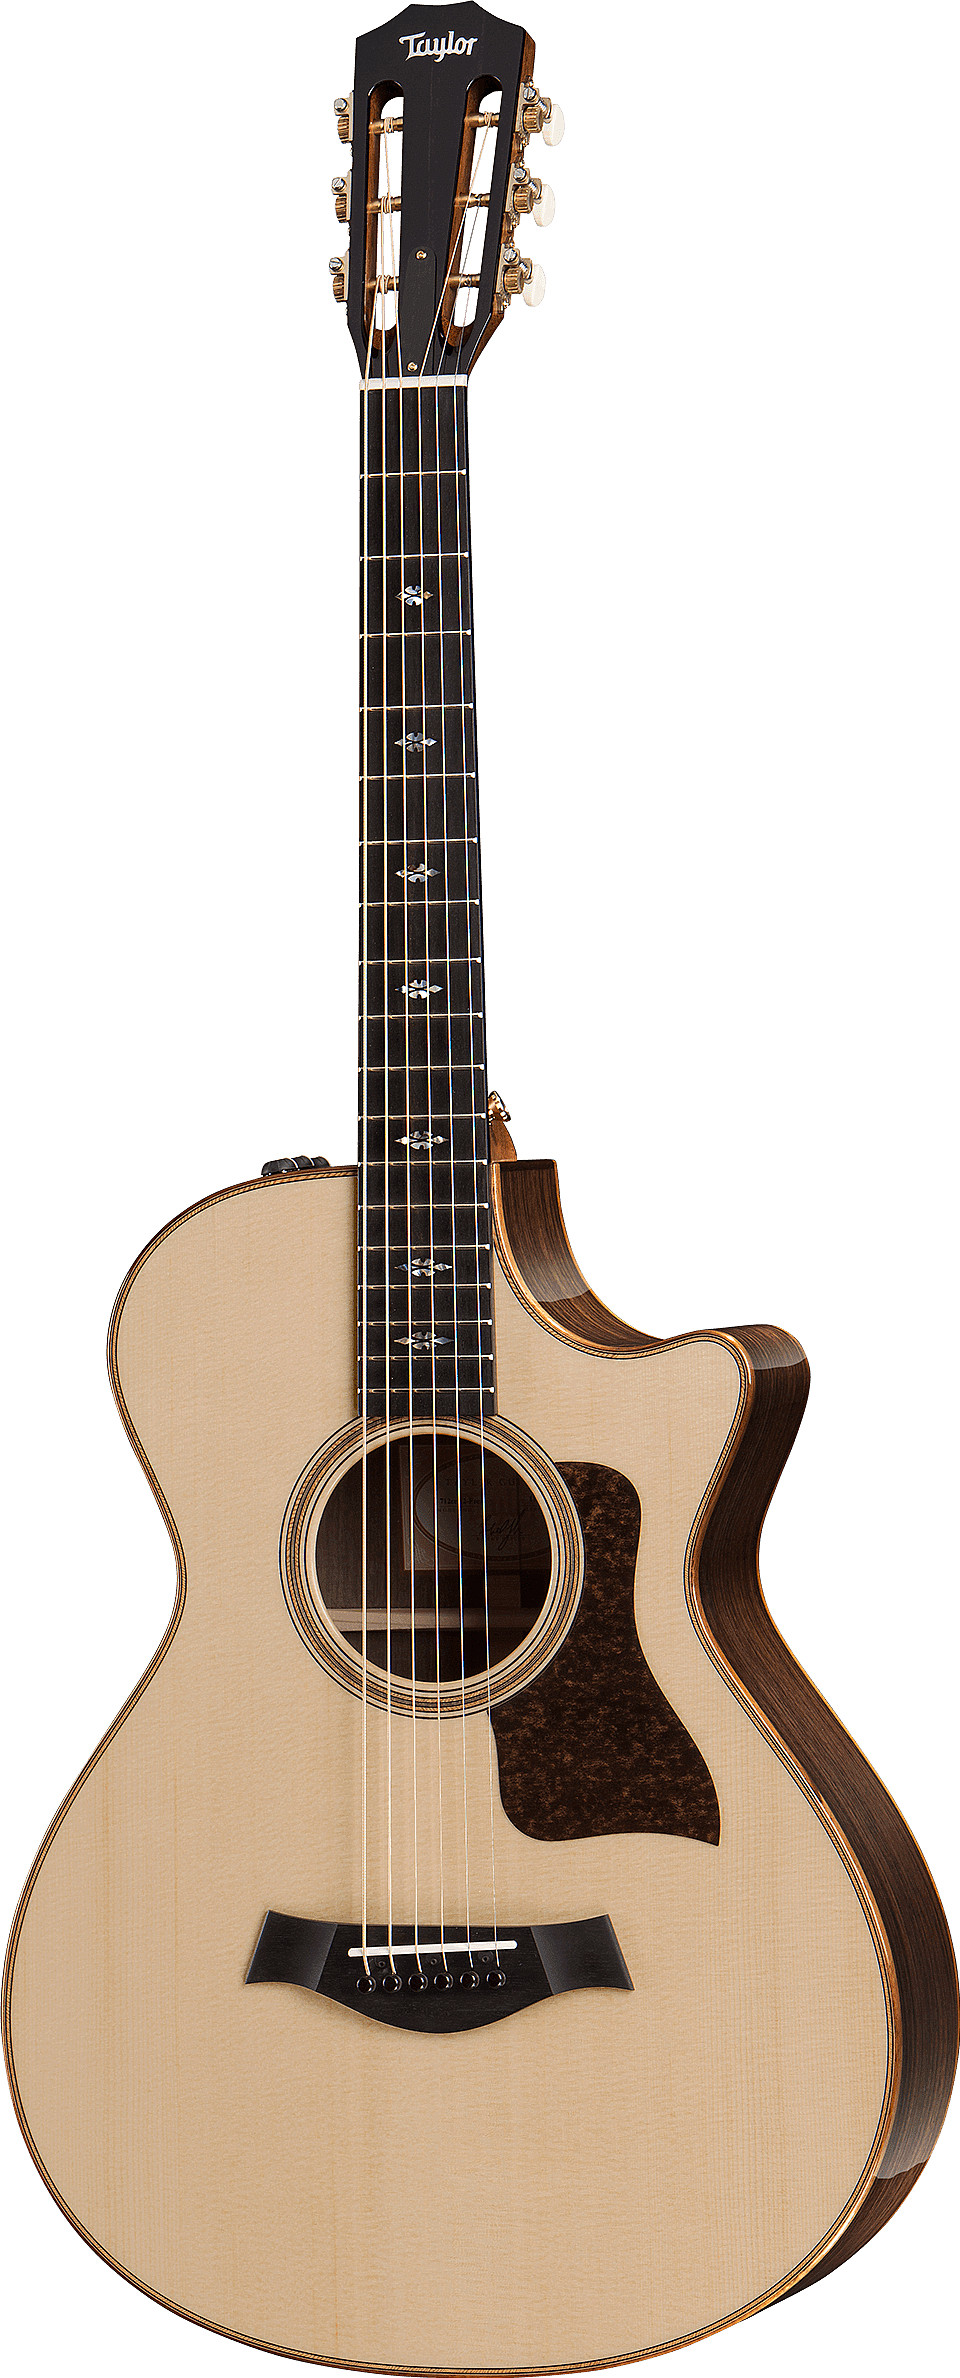 712ce 12-Fret by Taylor